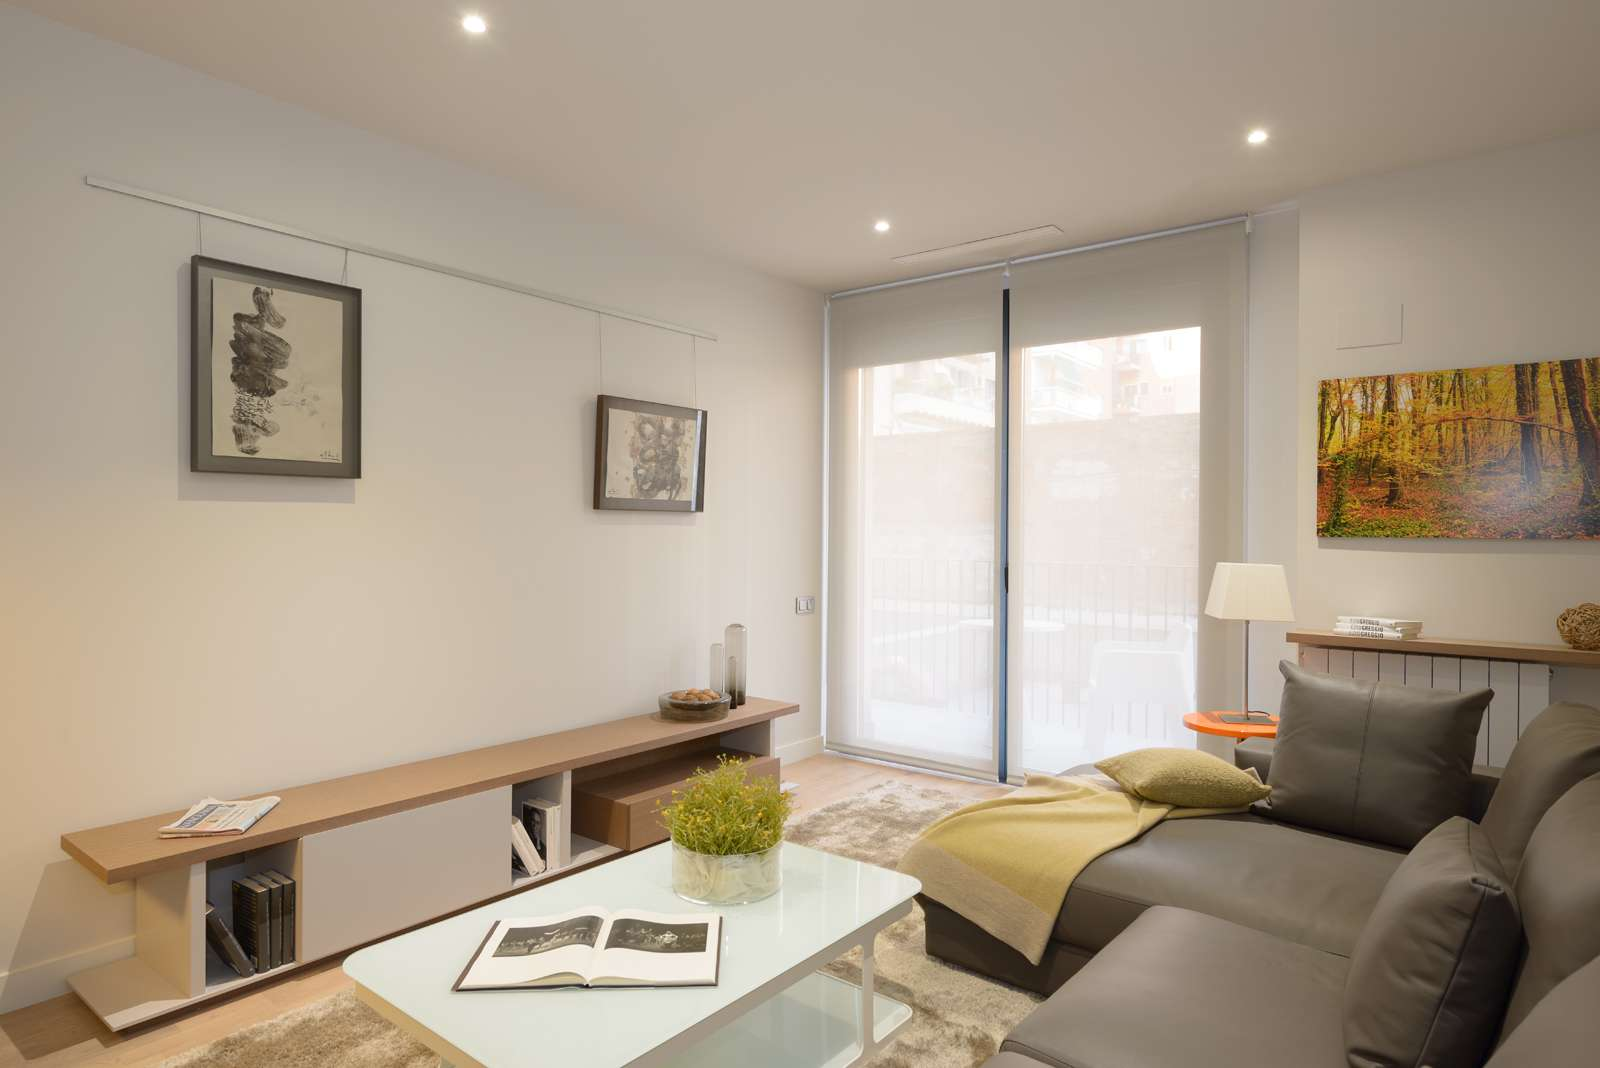 4 Bedroom Apartment for Sale close to Sagrada Familia